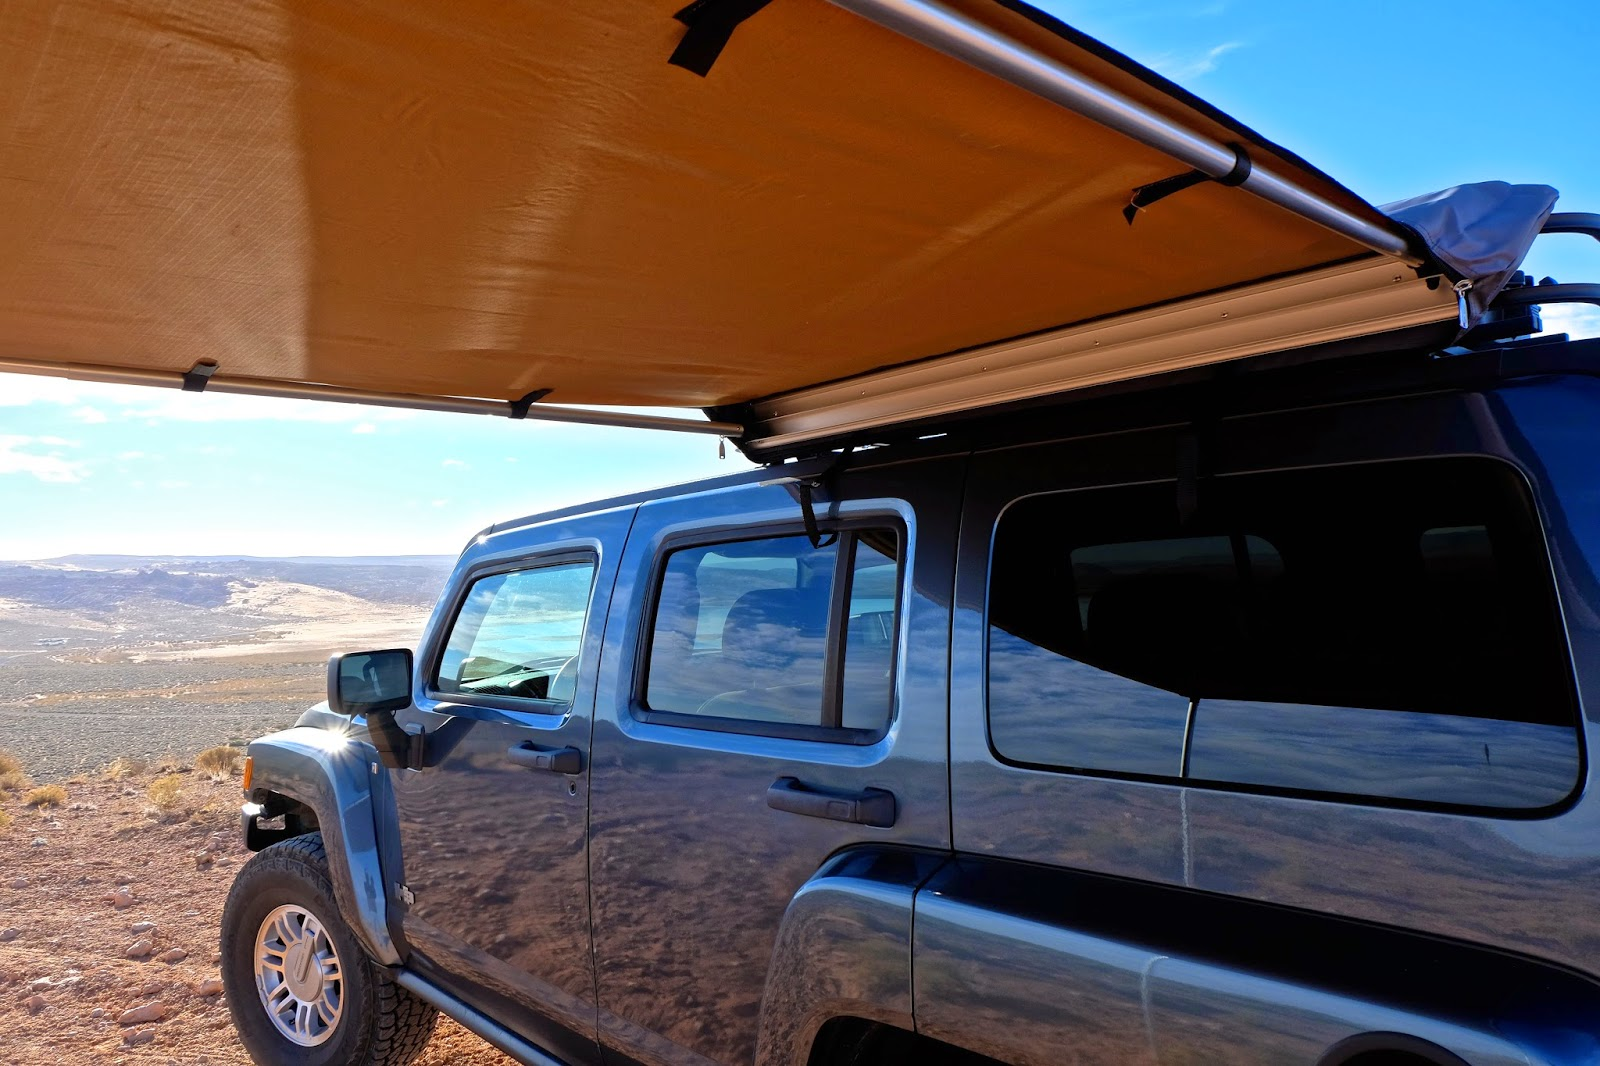 Arb Awning 1250 28 Images Products Bomber Products Arb 1250 Awning Arb Awning Front Wind